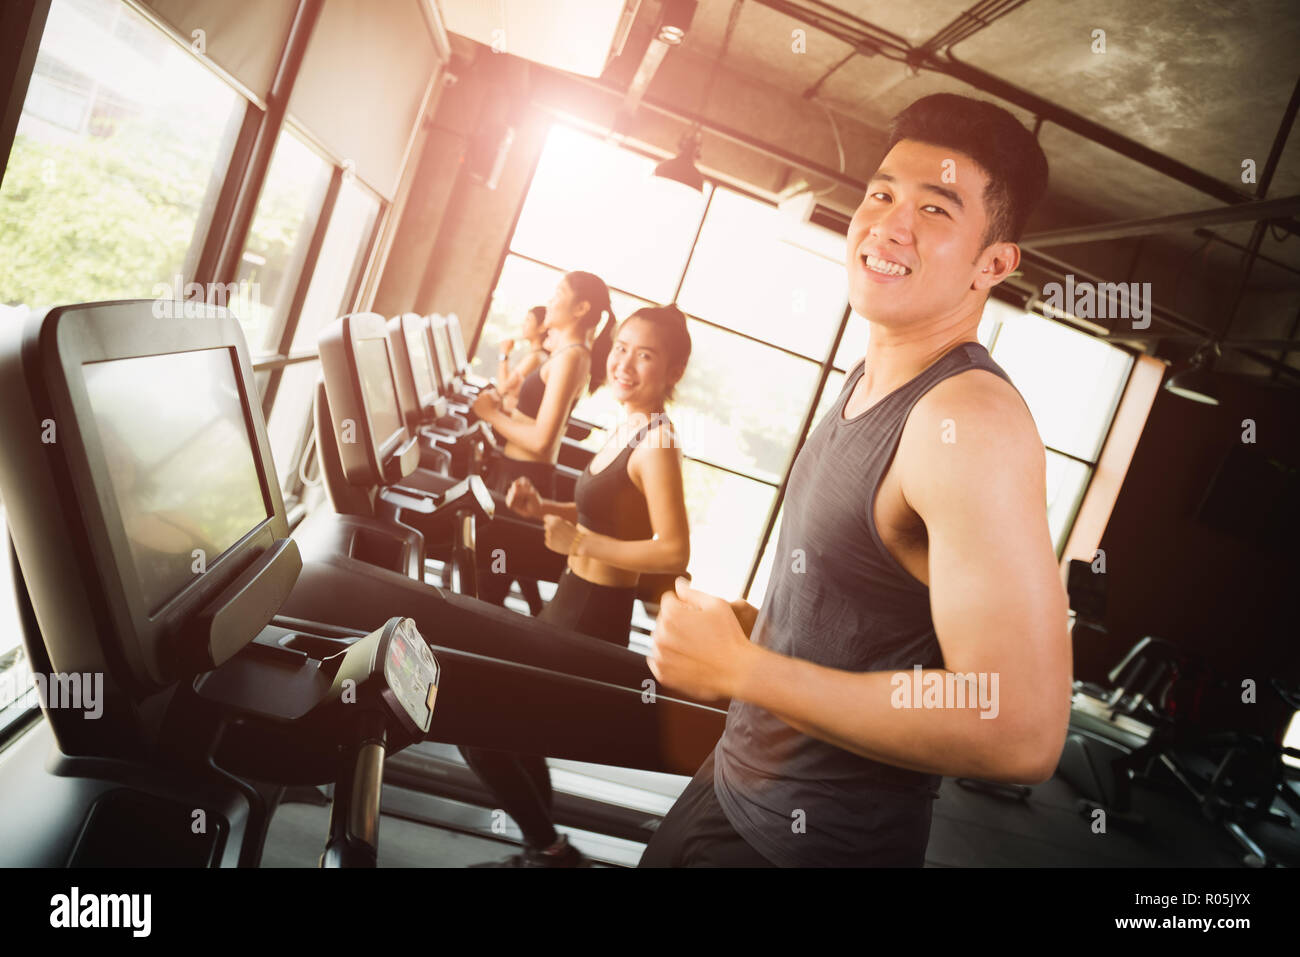 Happy asian young man with group of young people running or jogging on treadmills in modern sport gym. exercise and sport concept. - Stock Image